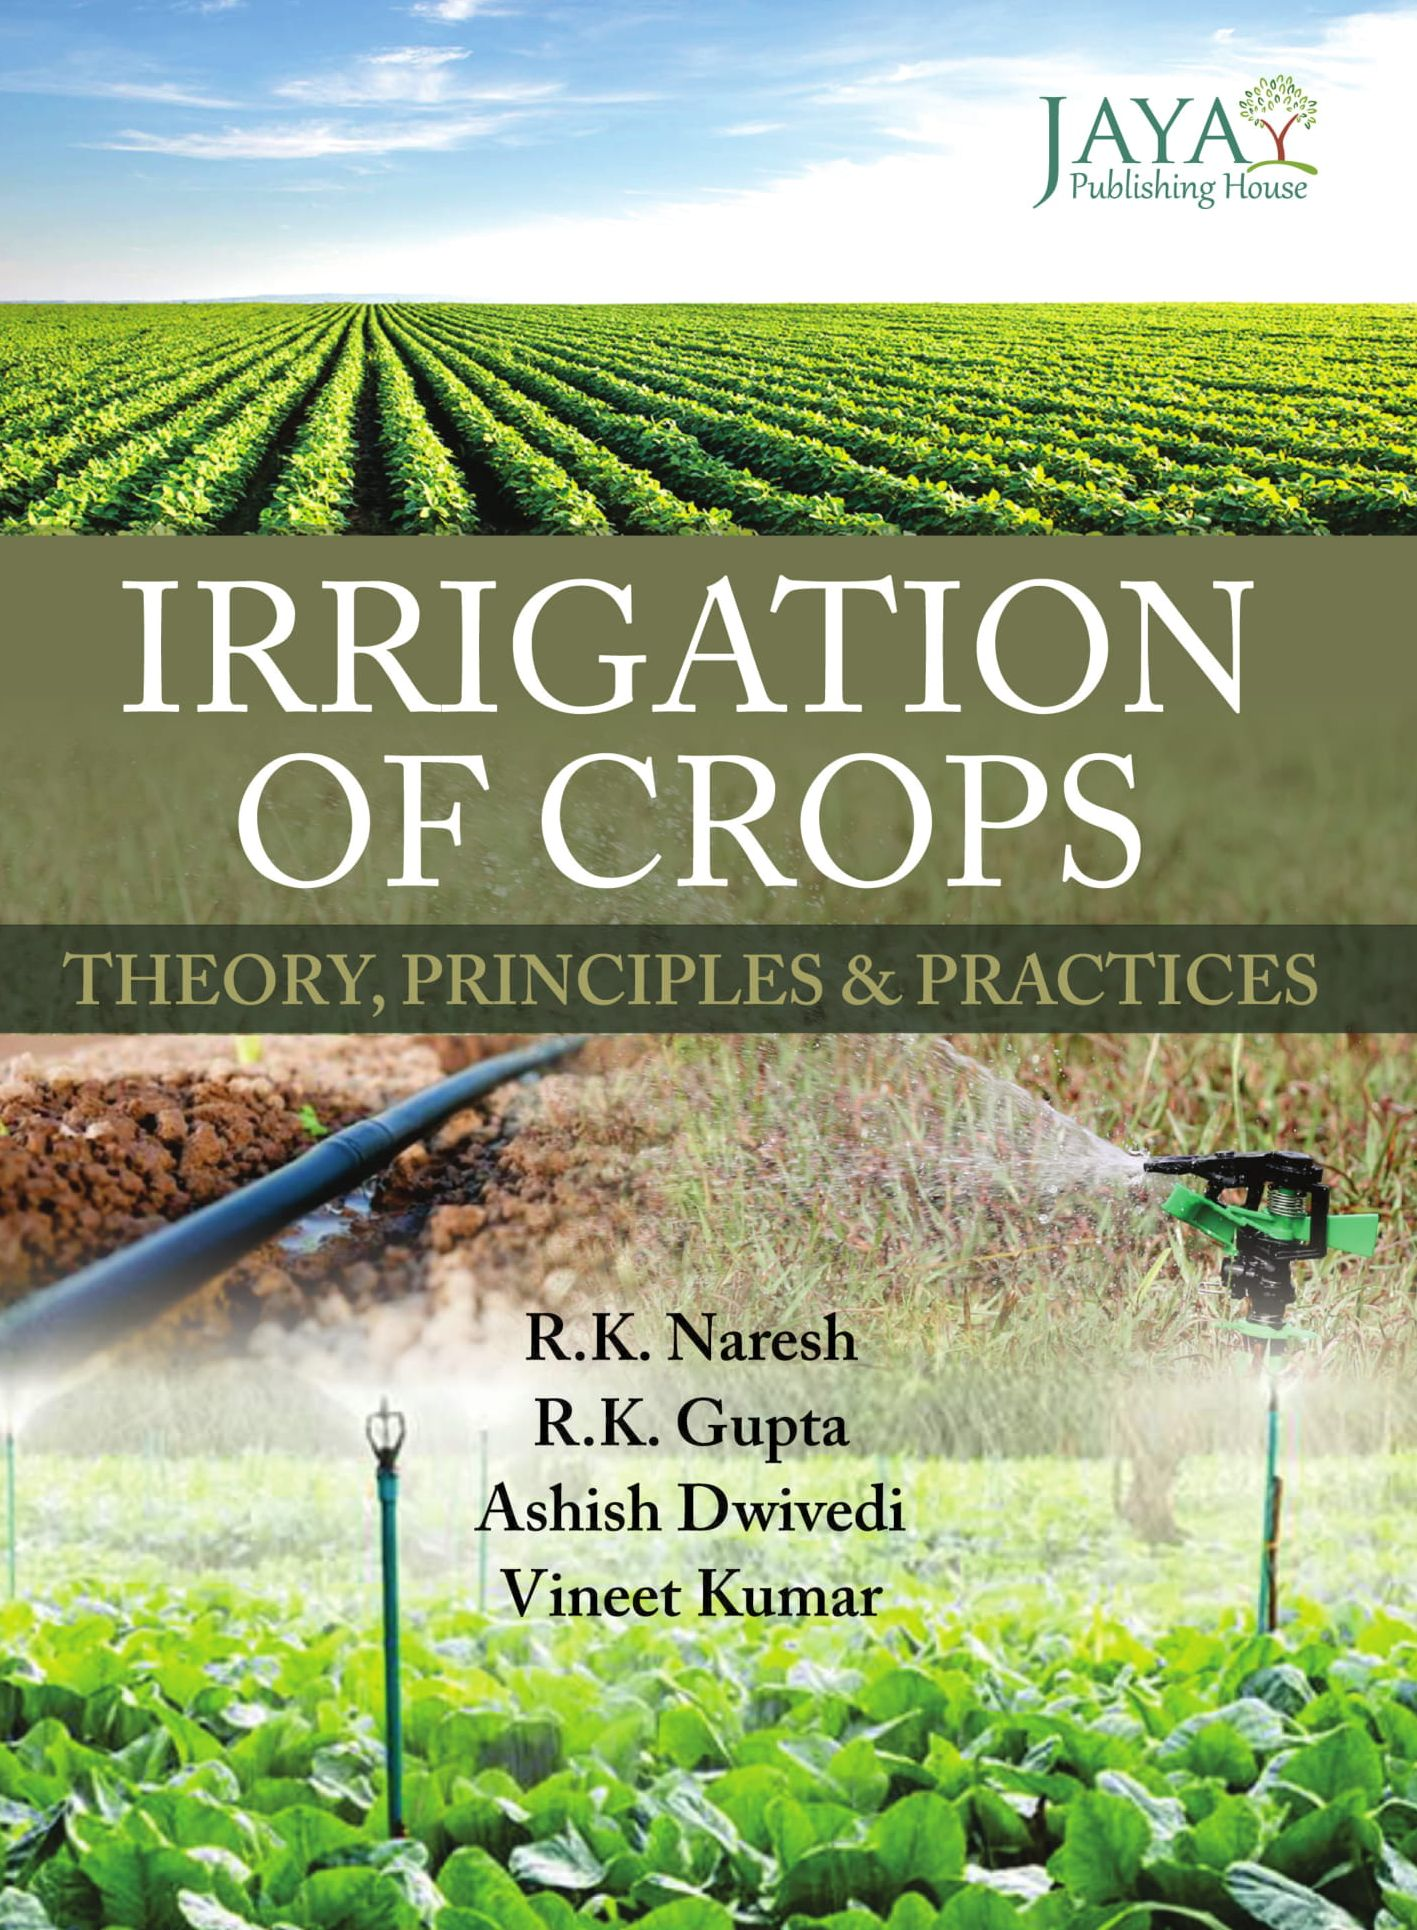 Irrigation of Crops : Theory, Principles & Practices